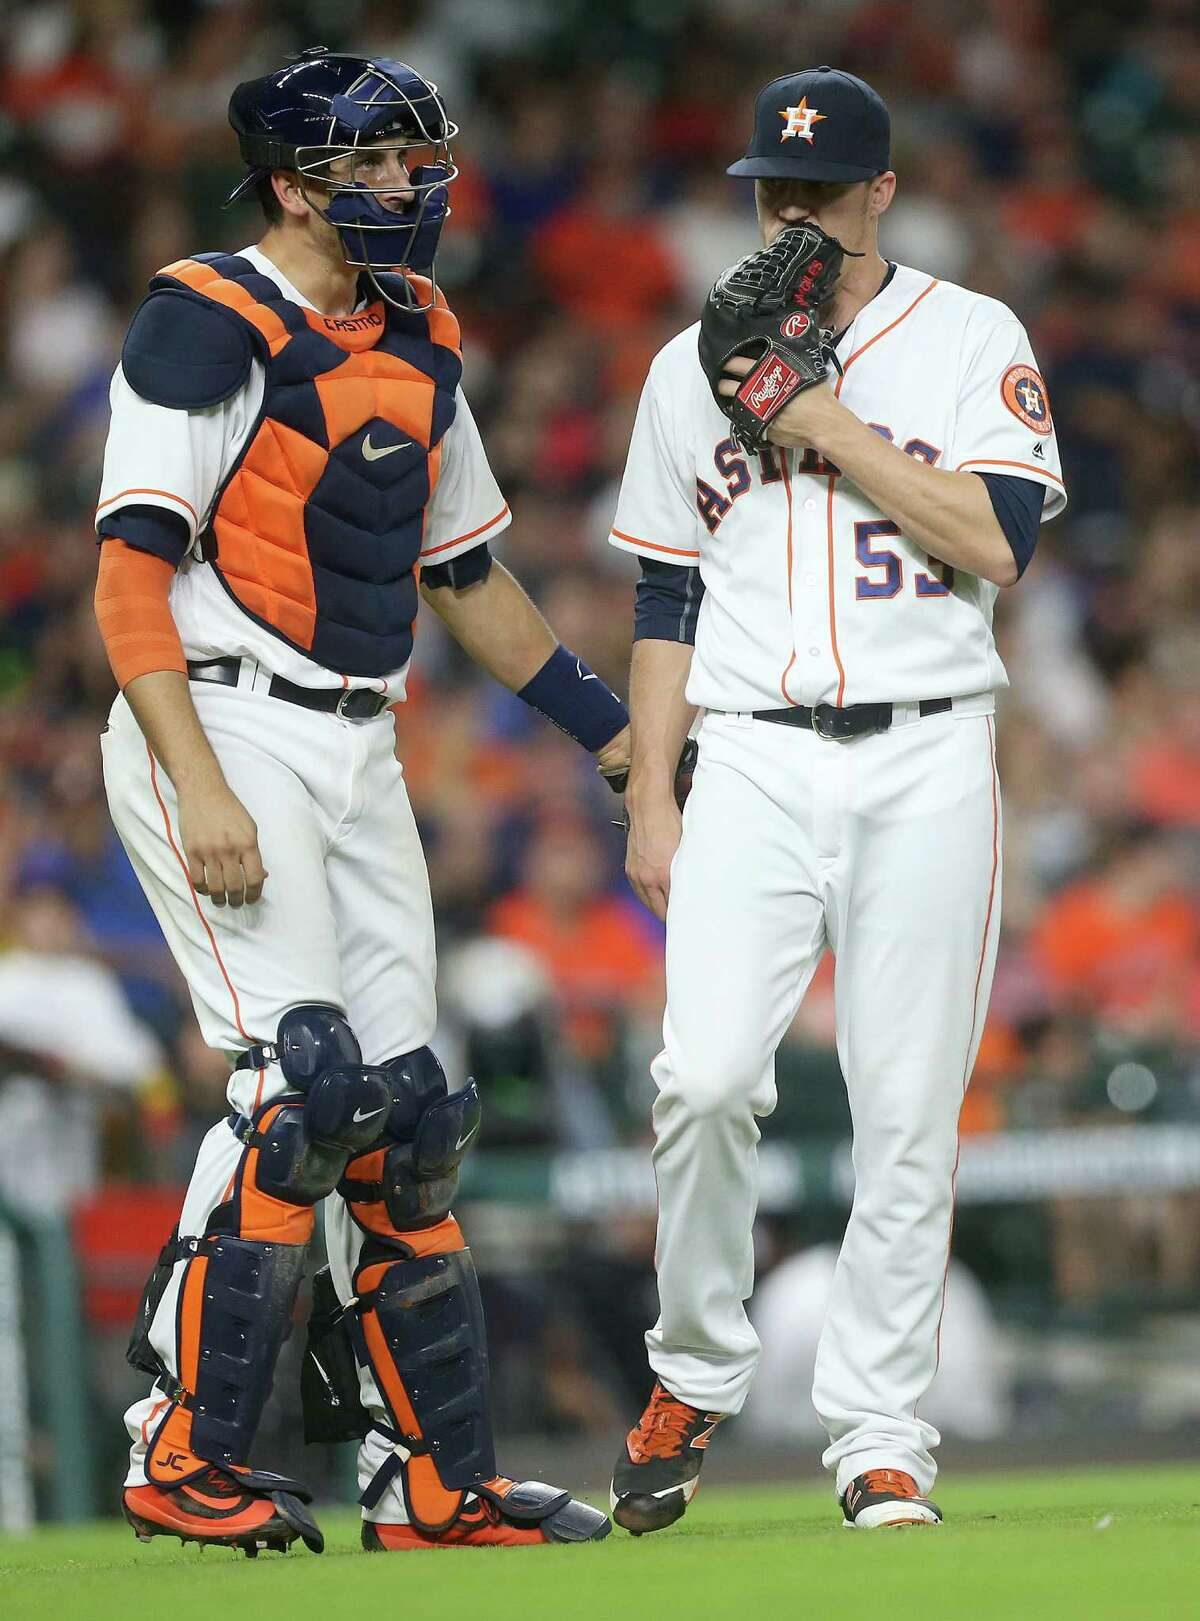 Little has gone right for Astros newcomer Ken Giles (right) this season.